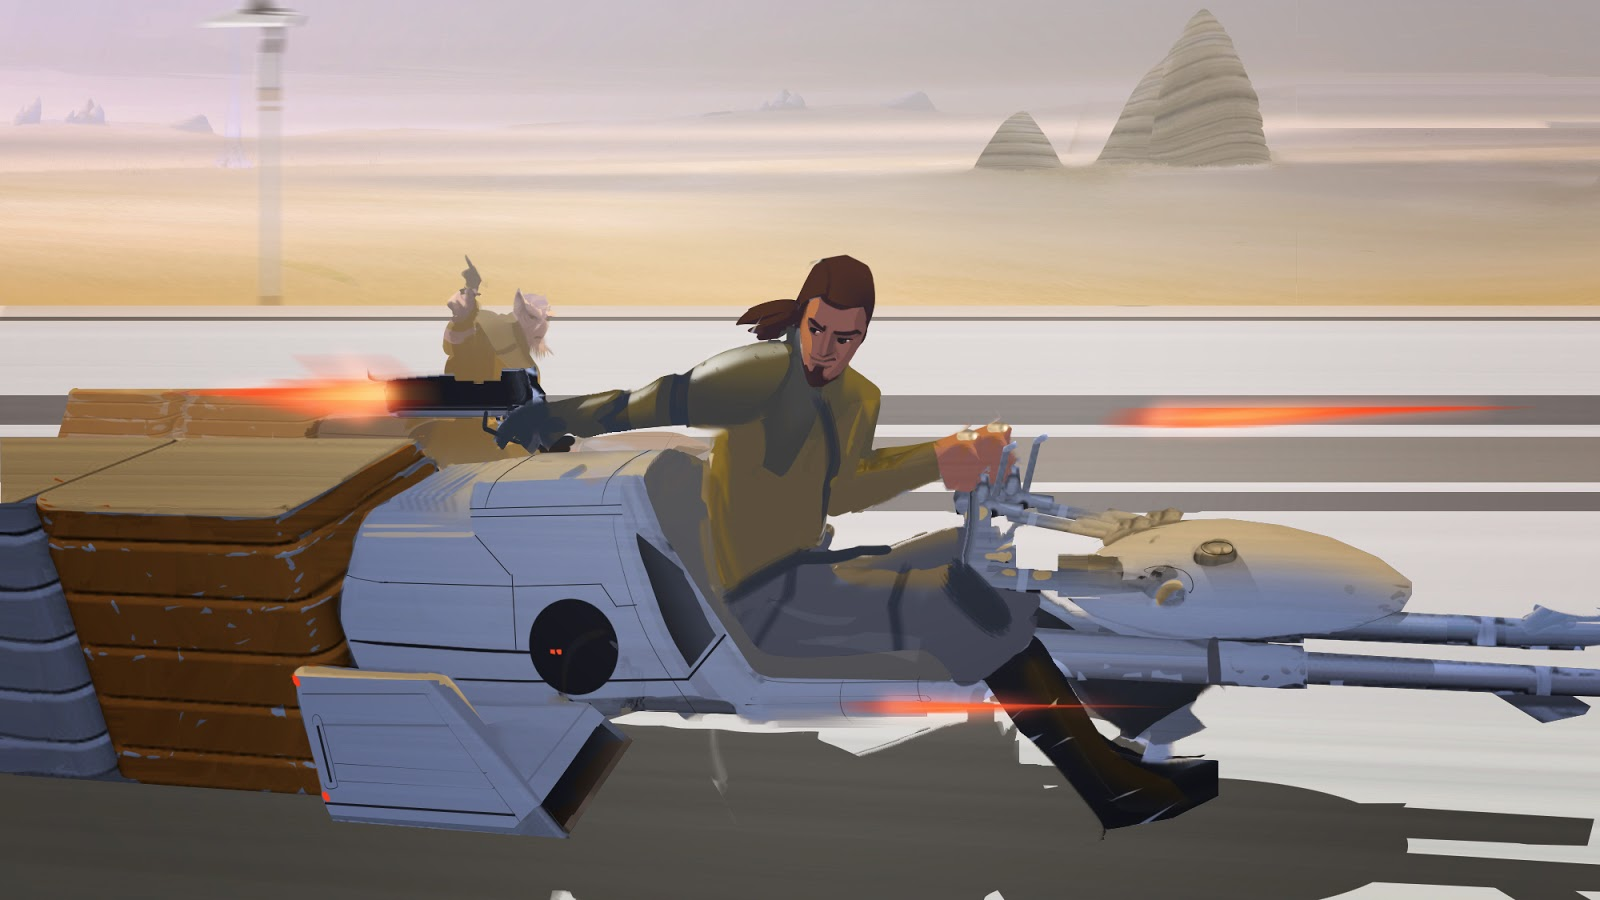 Speeder bike star wars rebels